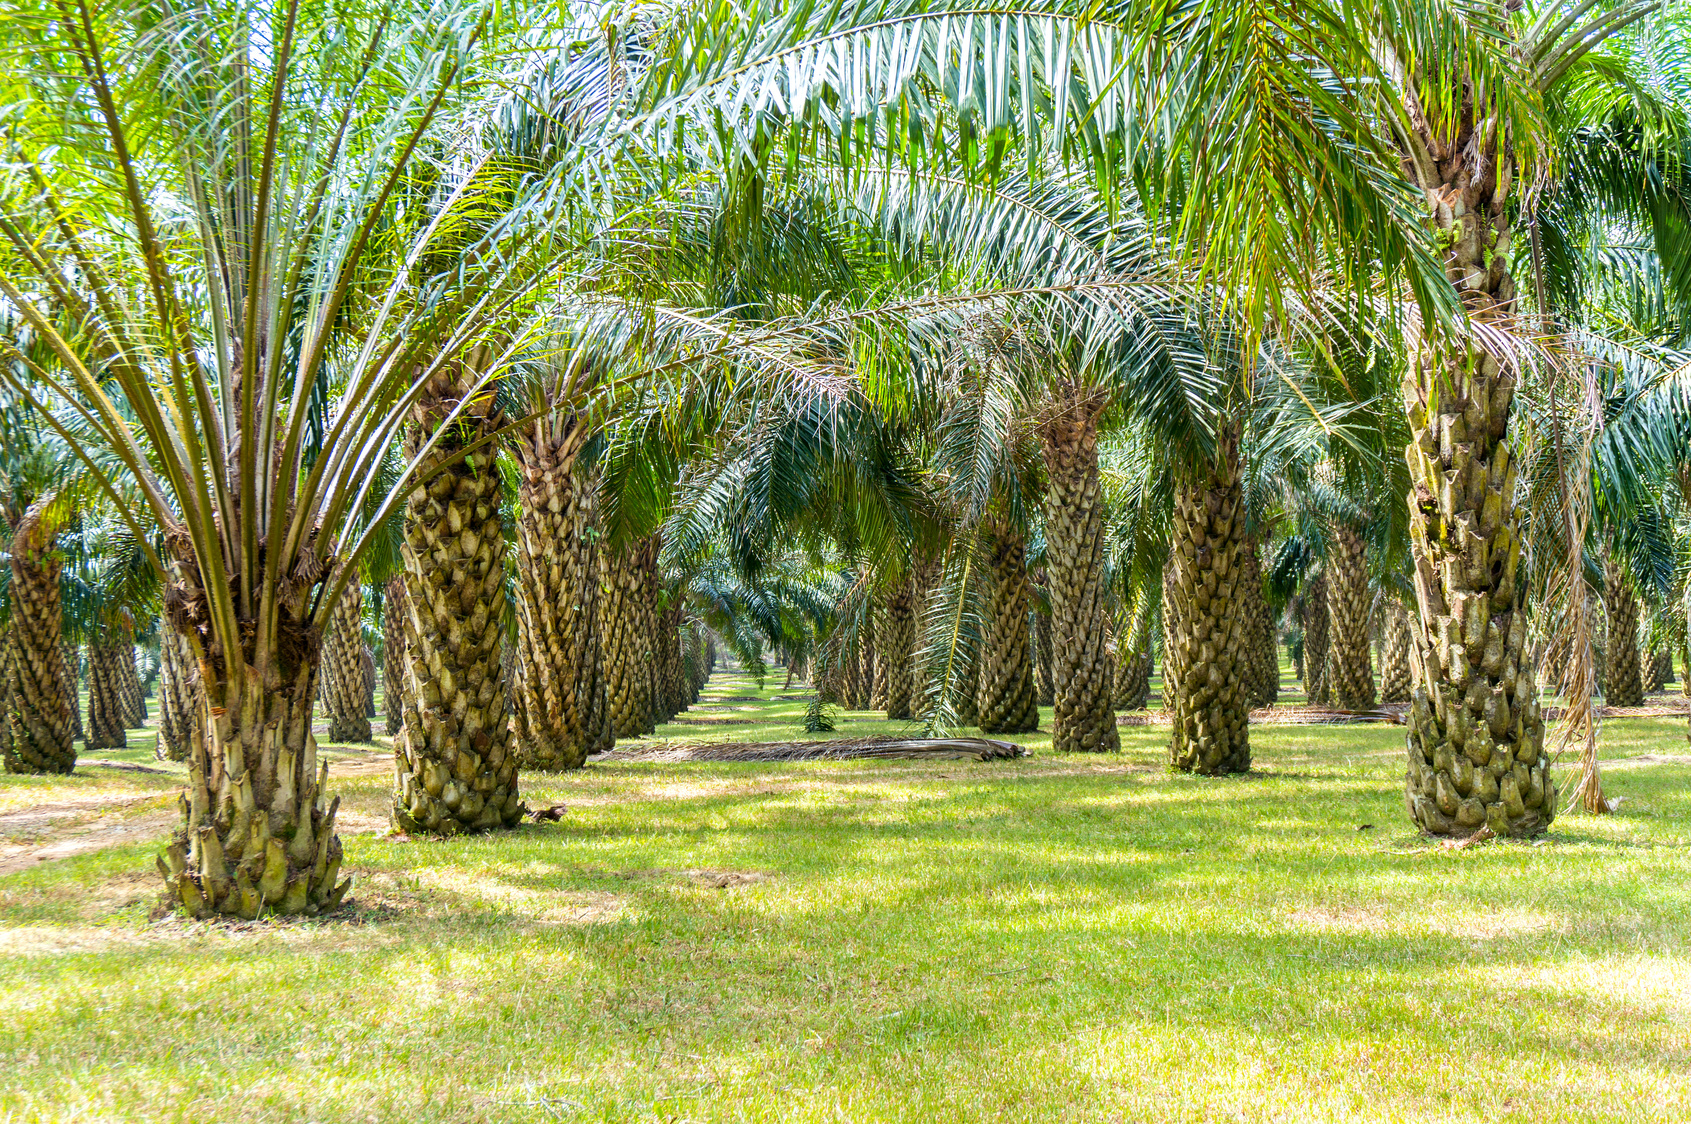 palm oil plantation growing up